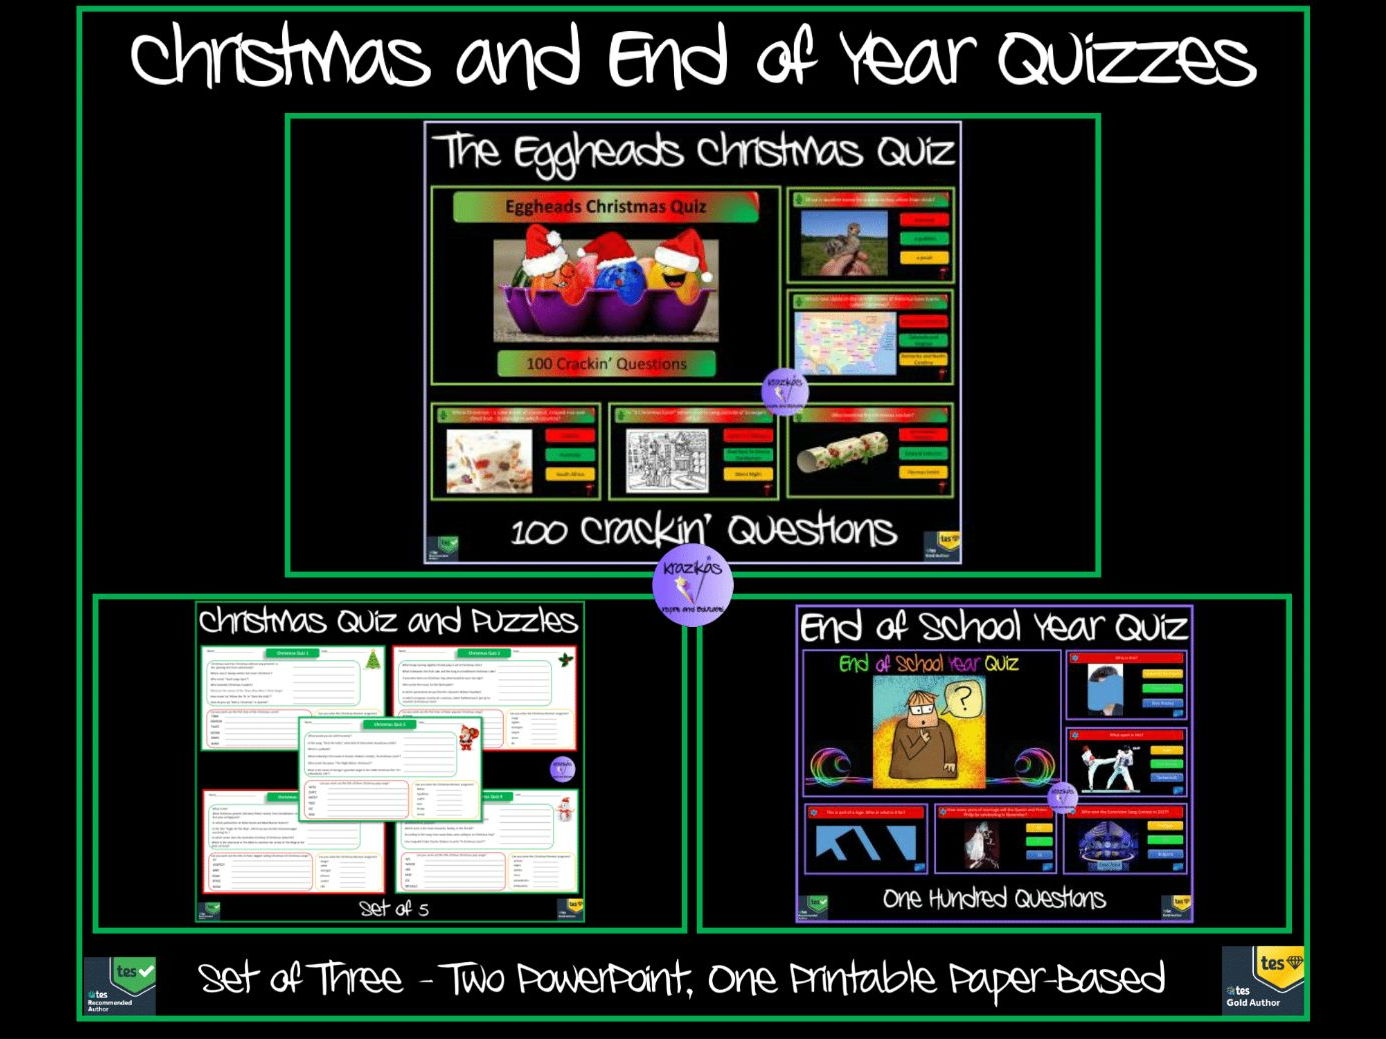 Christmas and End of Year Quizzes and Puzzles Bundle - PowerPoint and Paper Based